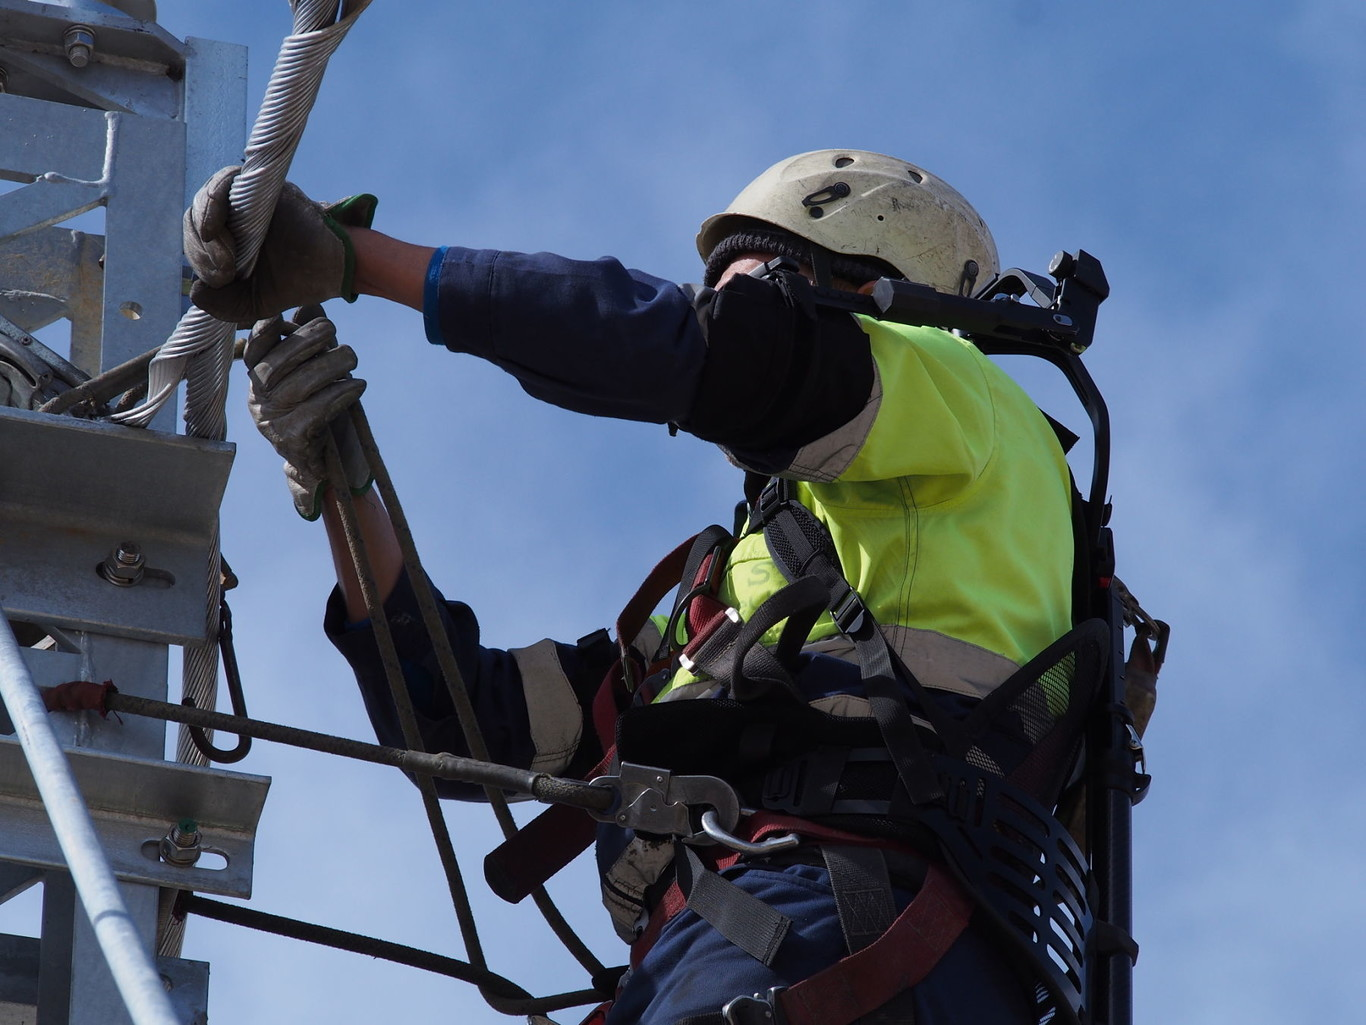 A Telice worker uses an exoskeleton during his activity.